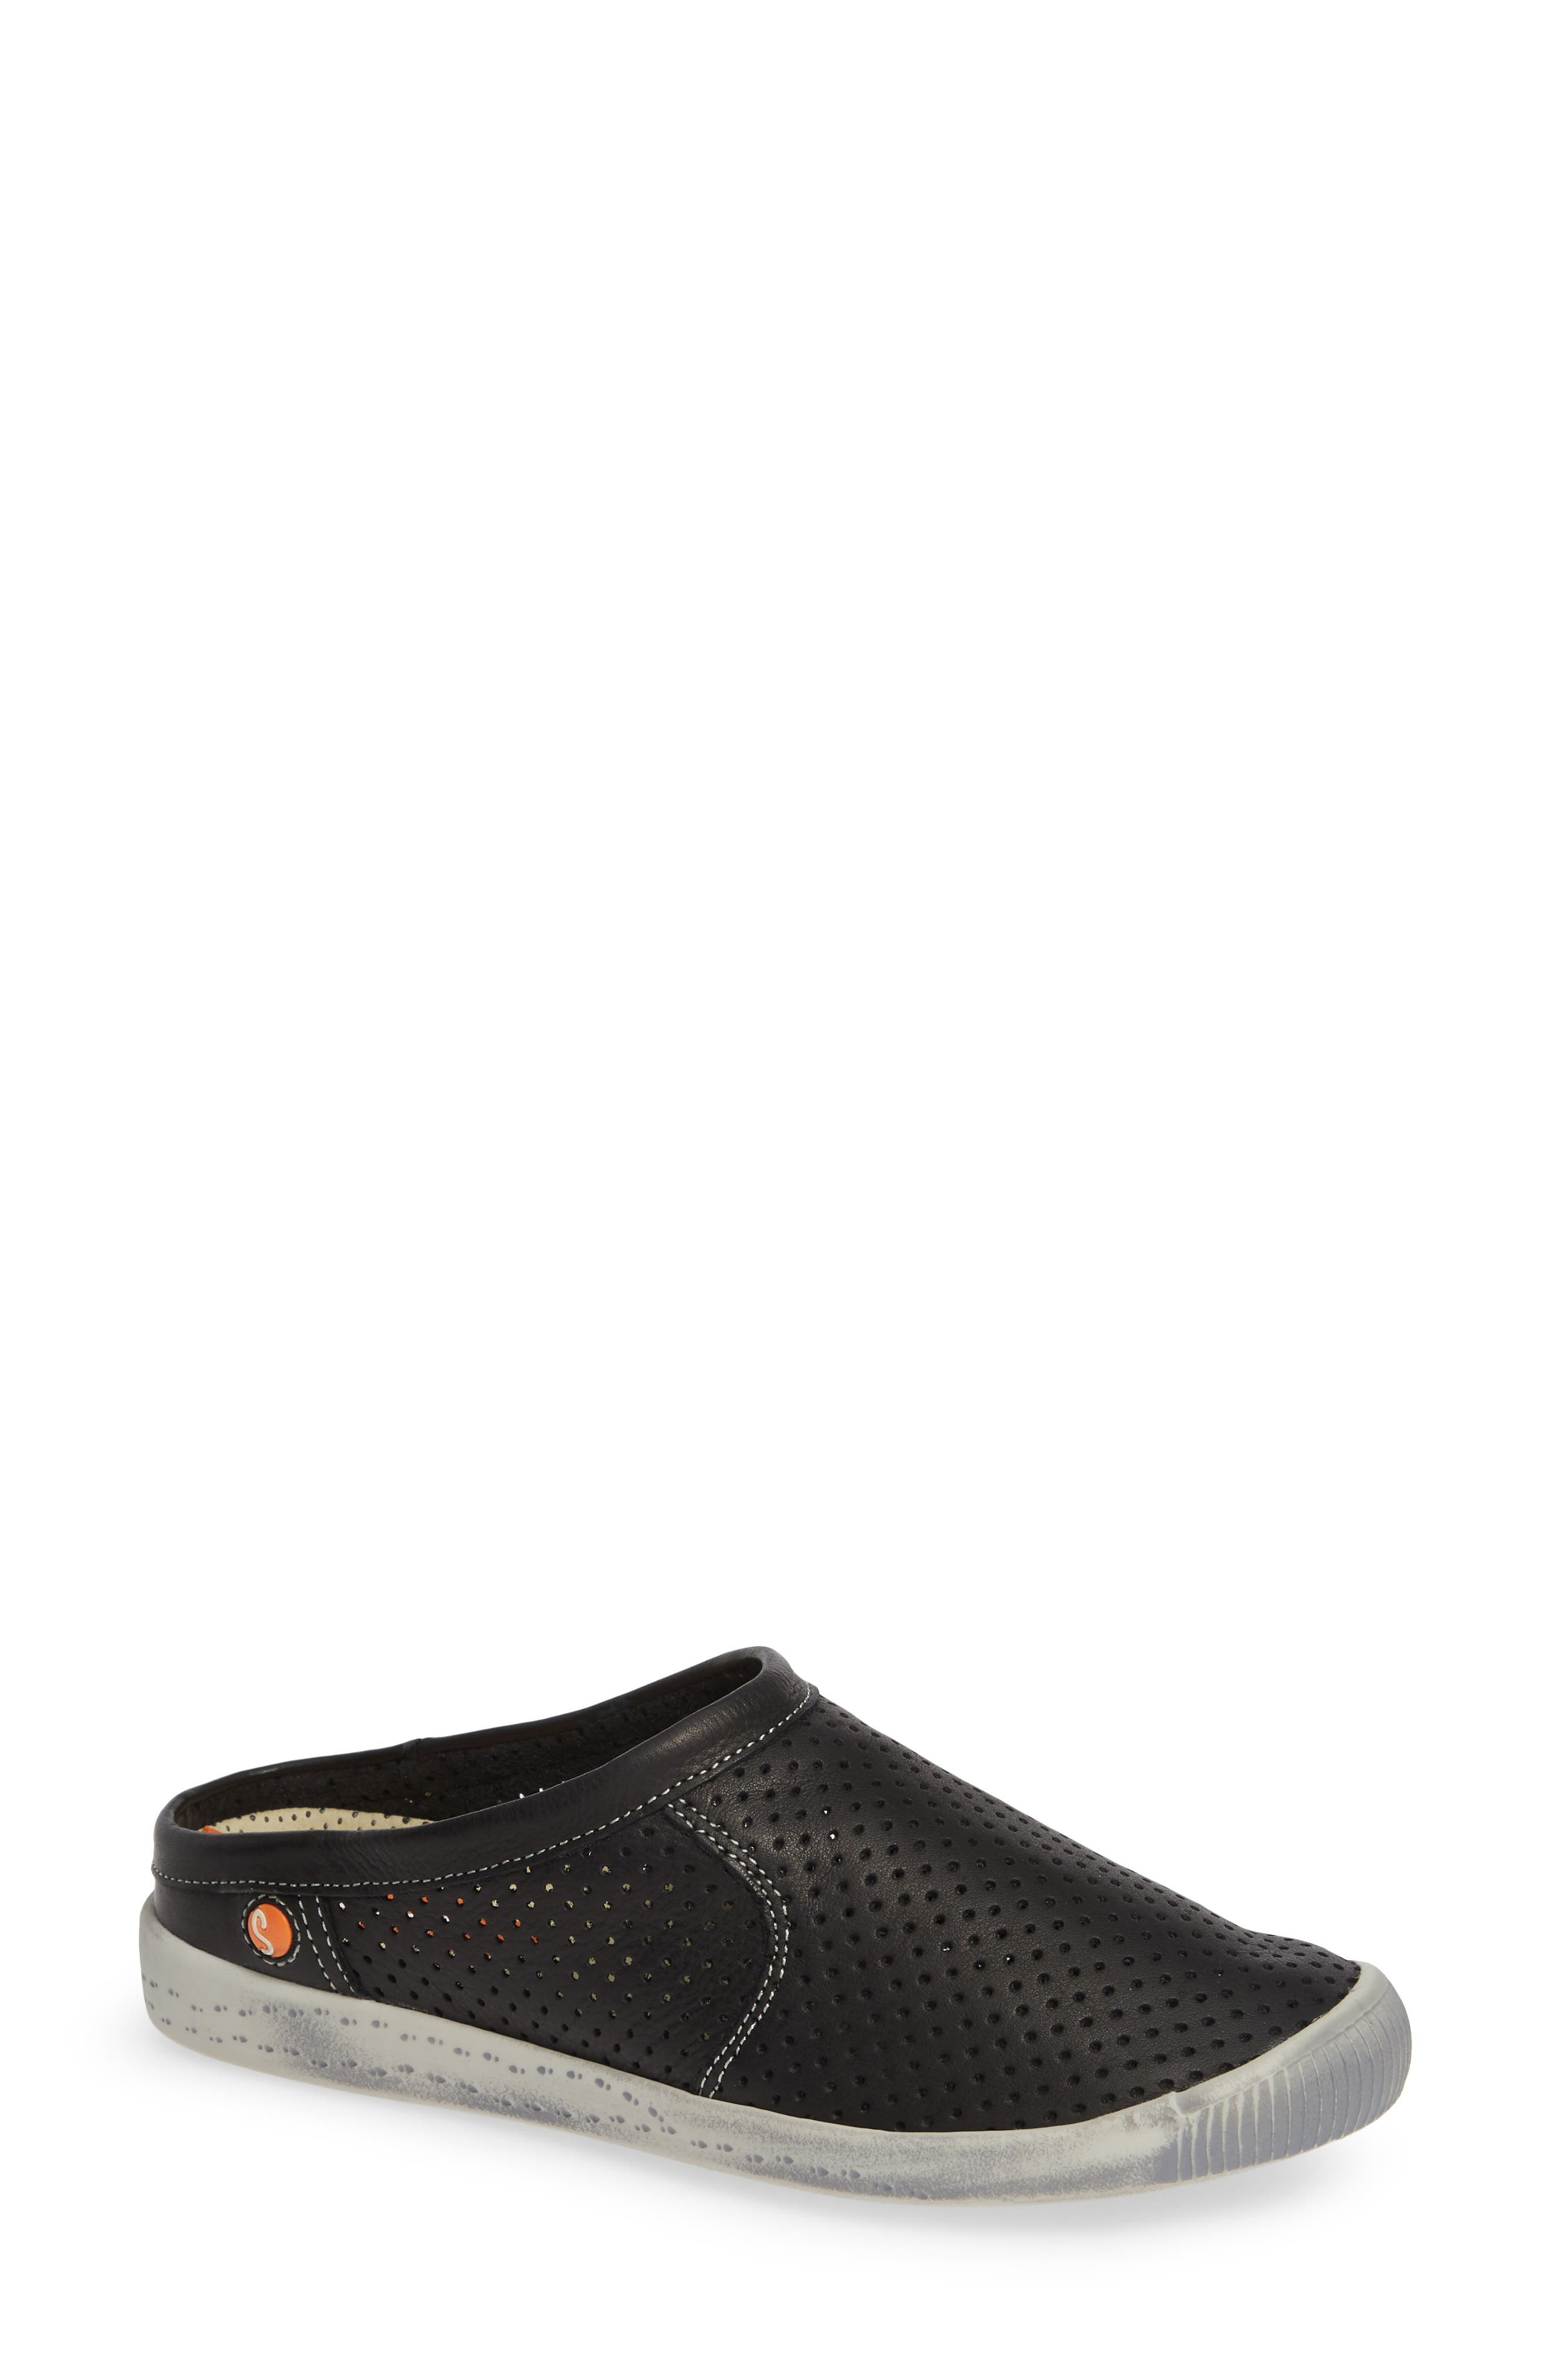 Softinos By Fly London Ima Sneaker Mule, Black